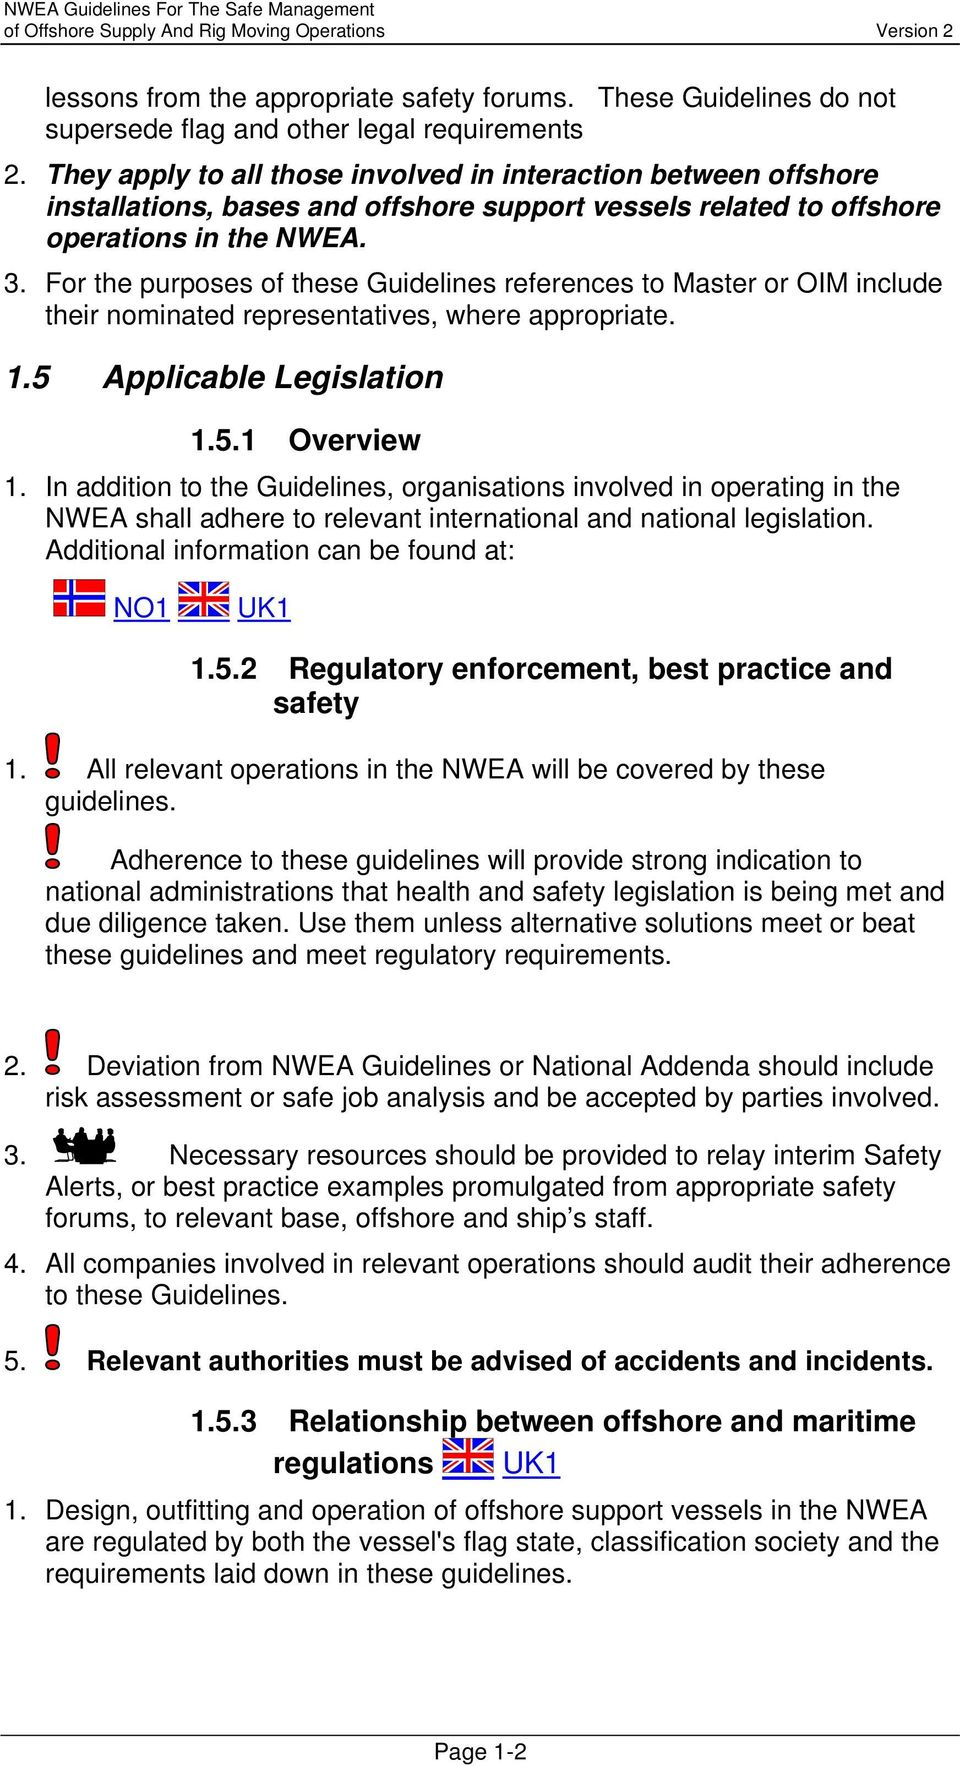 NWEA Guidelines for the Safe Management of Offshore Supply